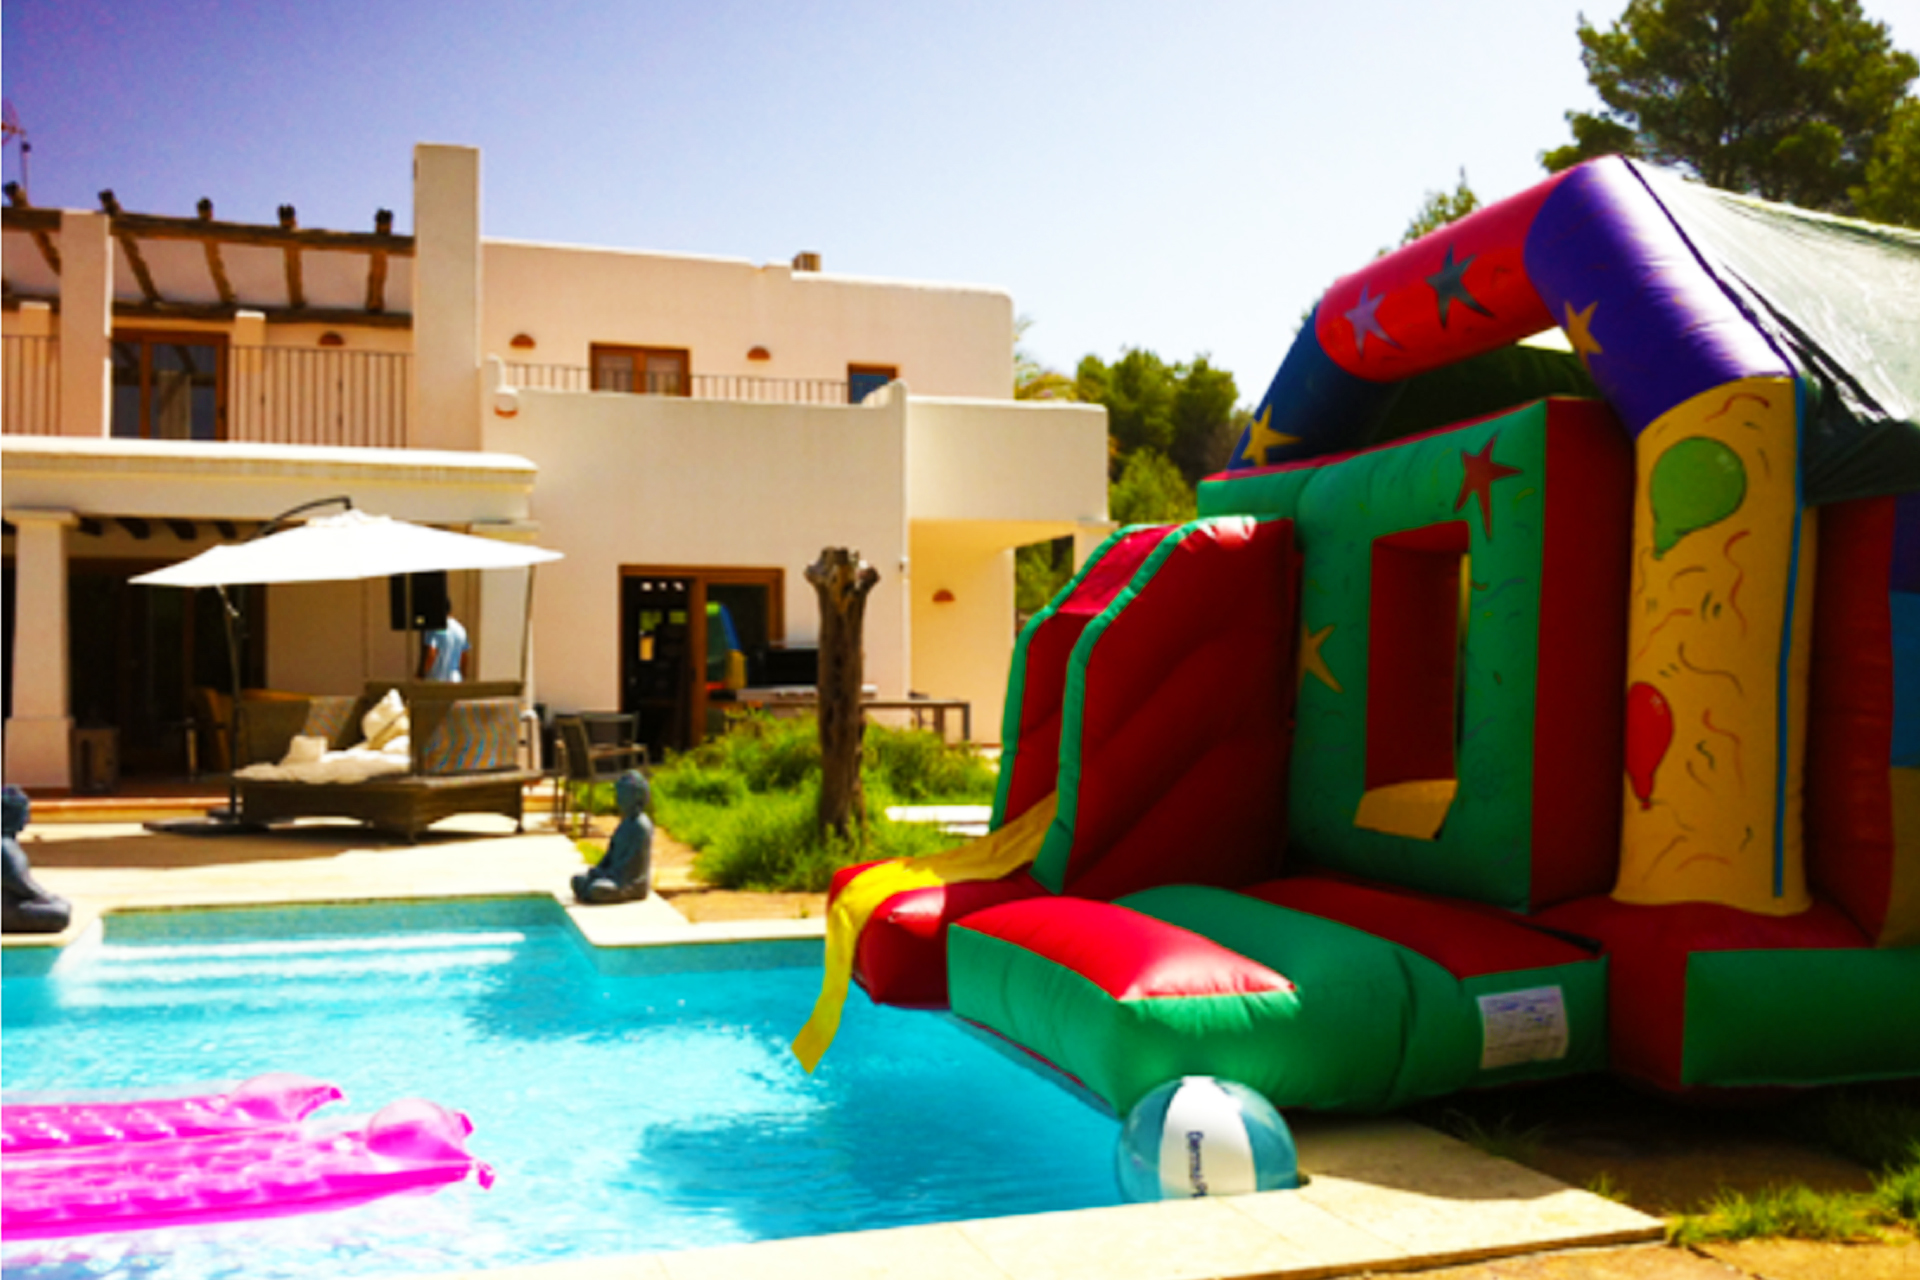 The Fun House Bouncy Castle - Inflatable Castles available at Fairytale Ibiza